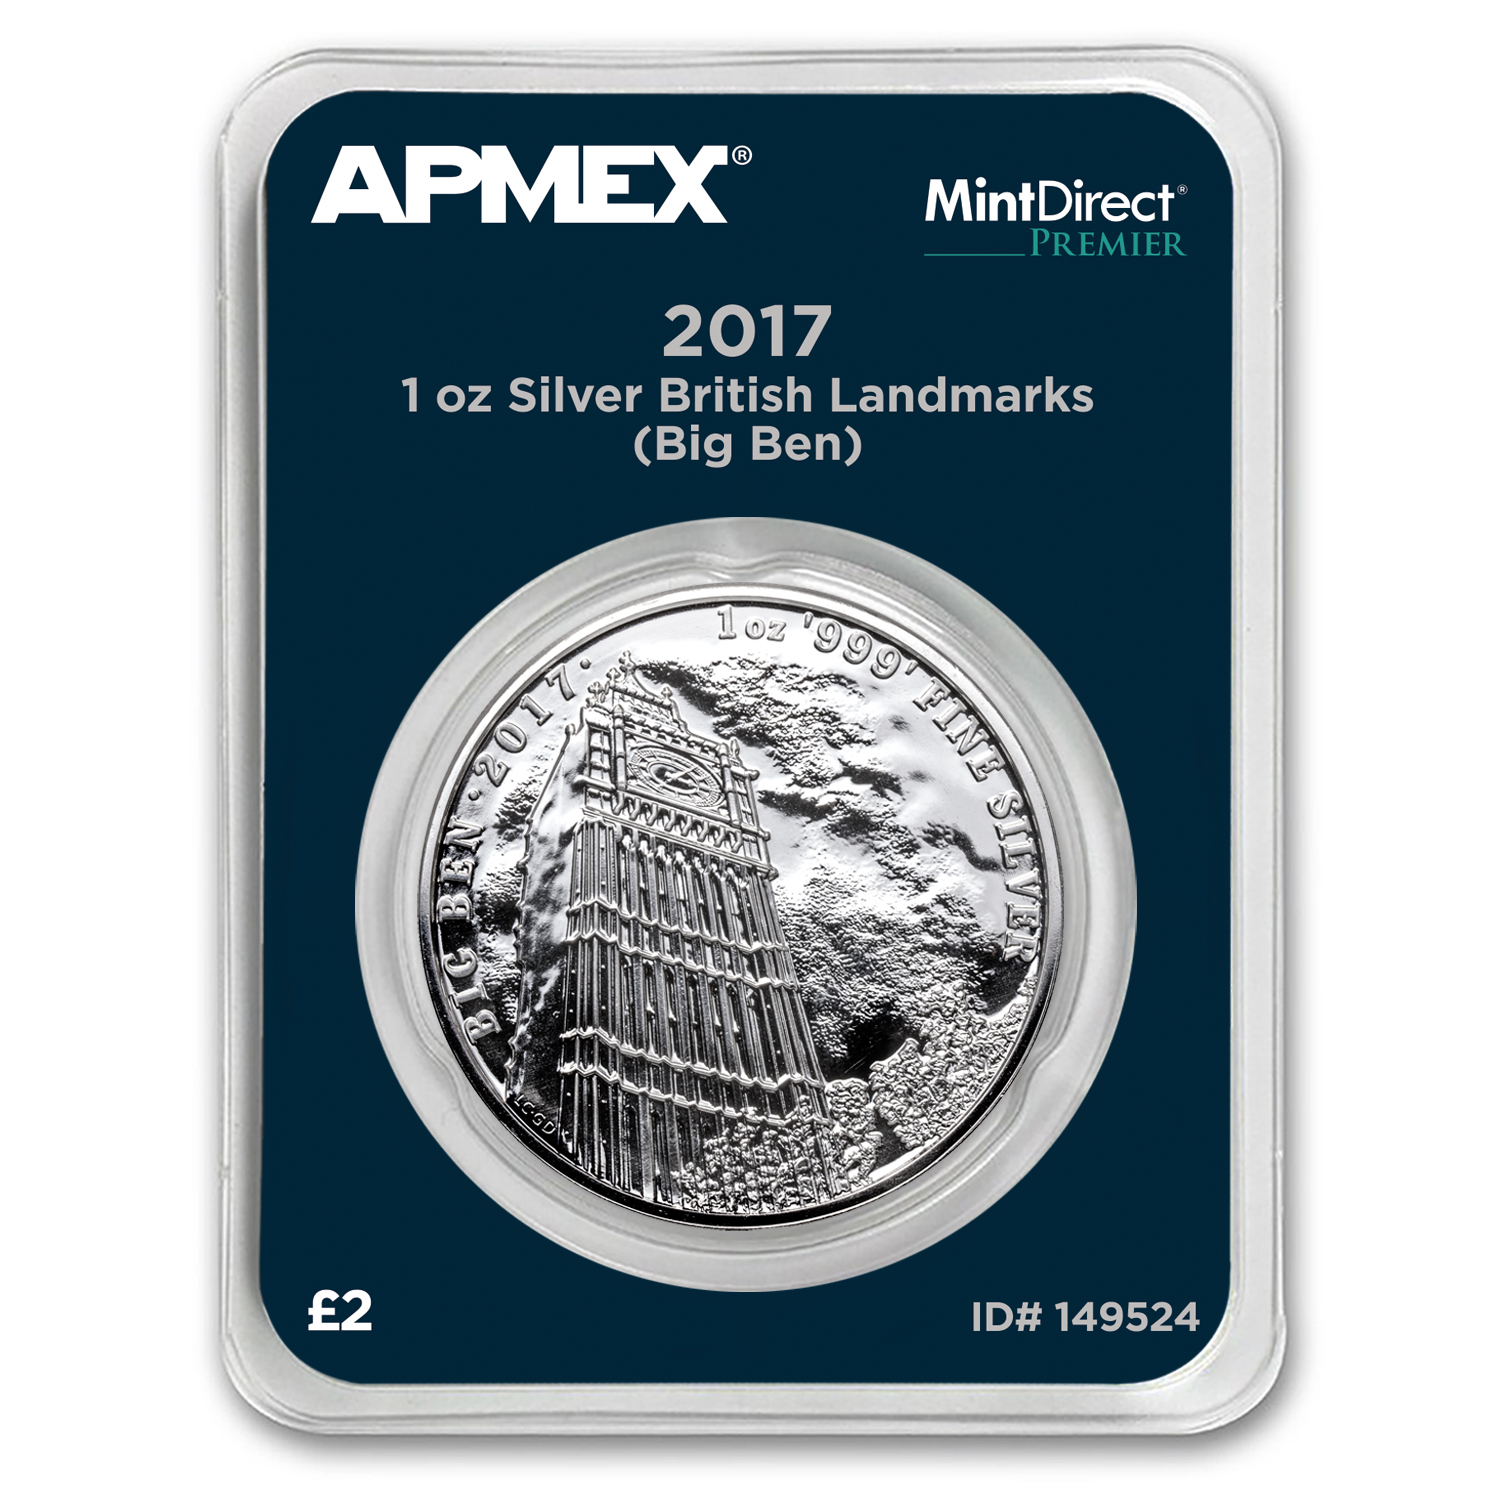 2017 1 oz Silver Landmarks of Britain Big Ben (MD® Premier)